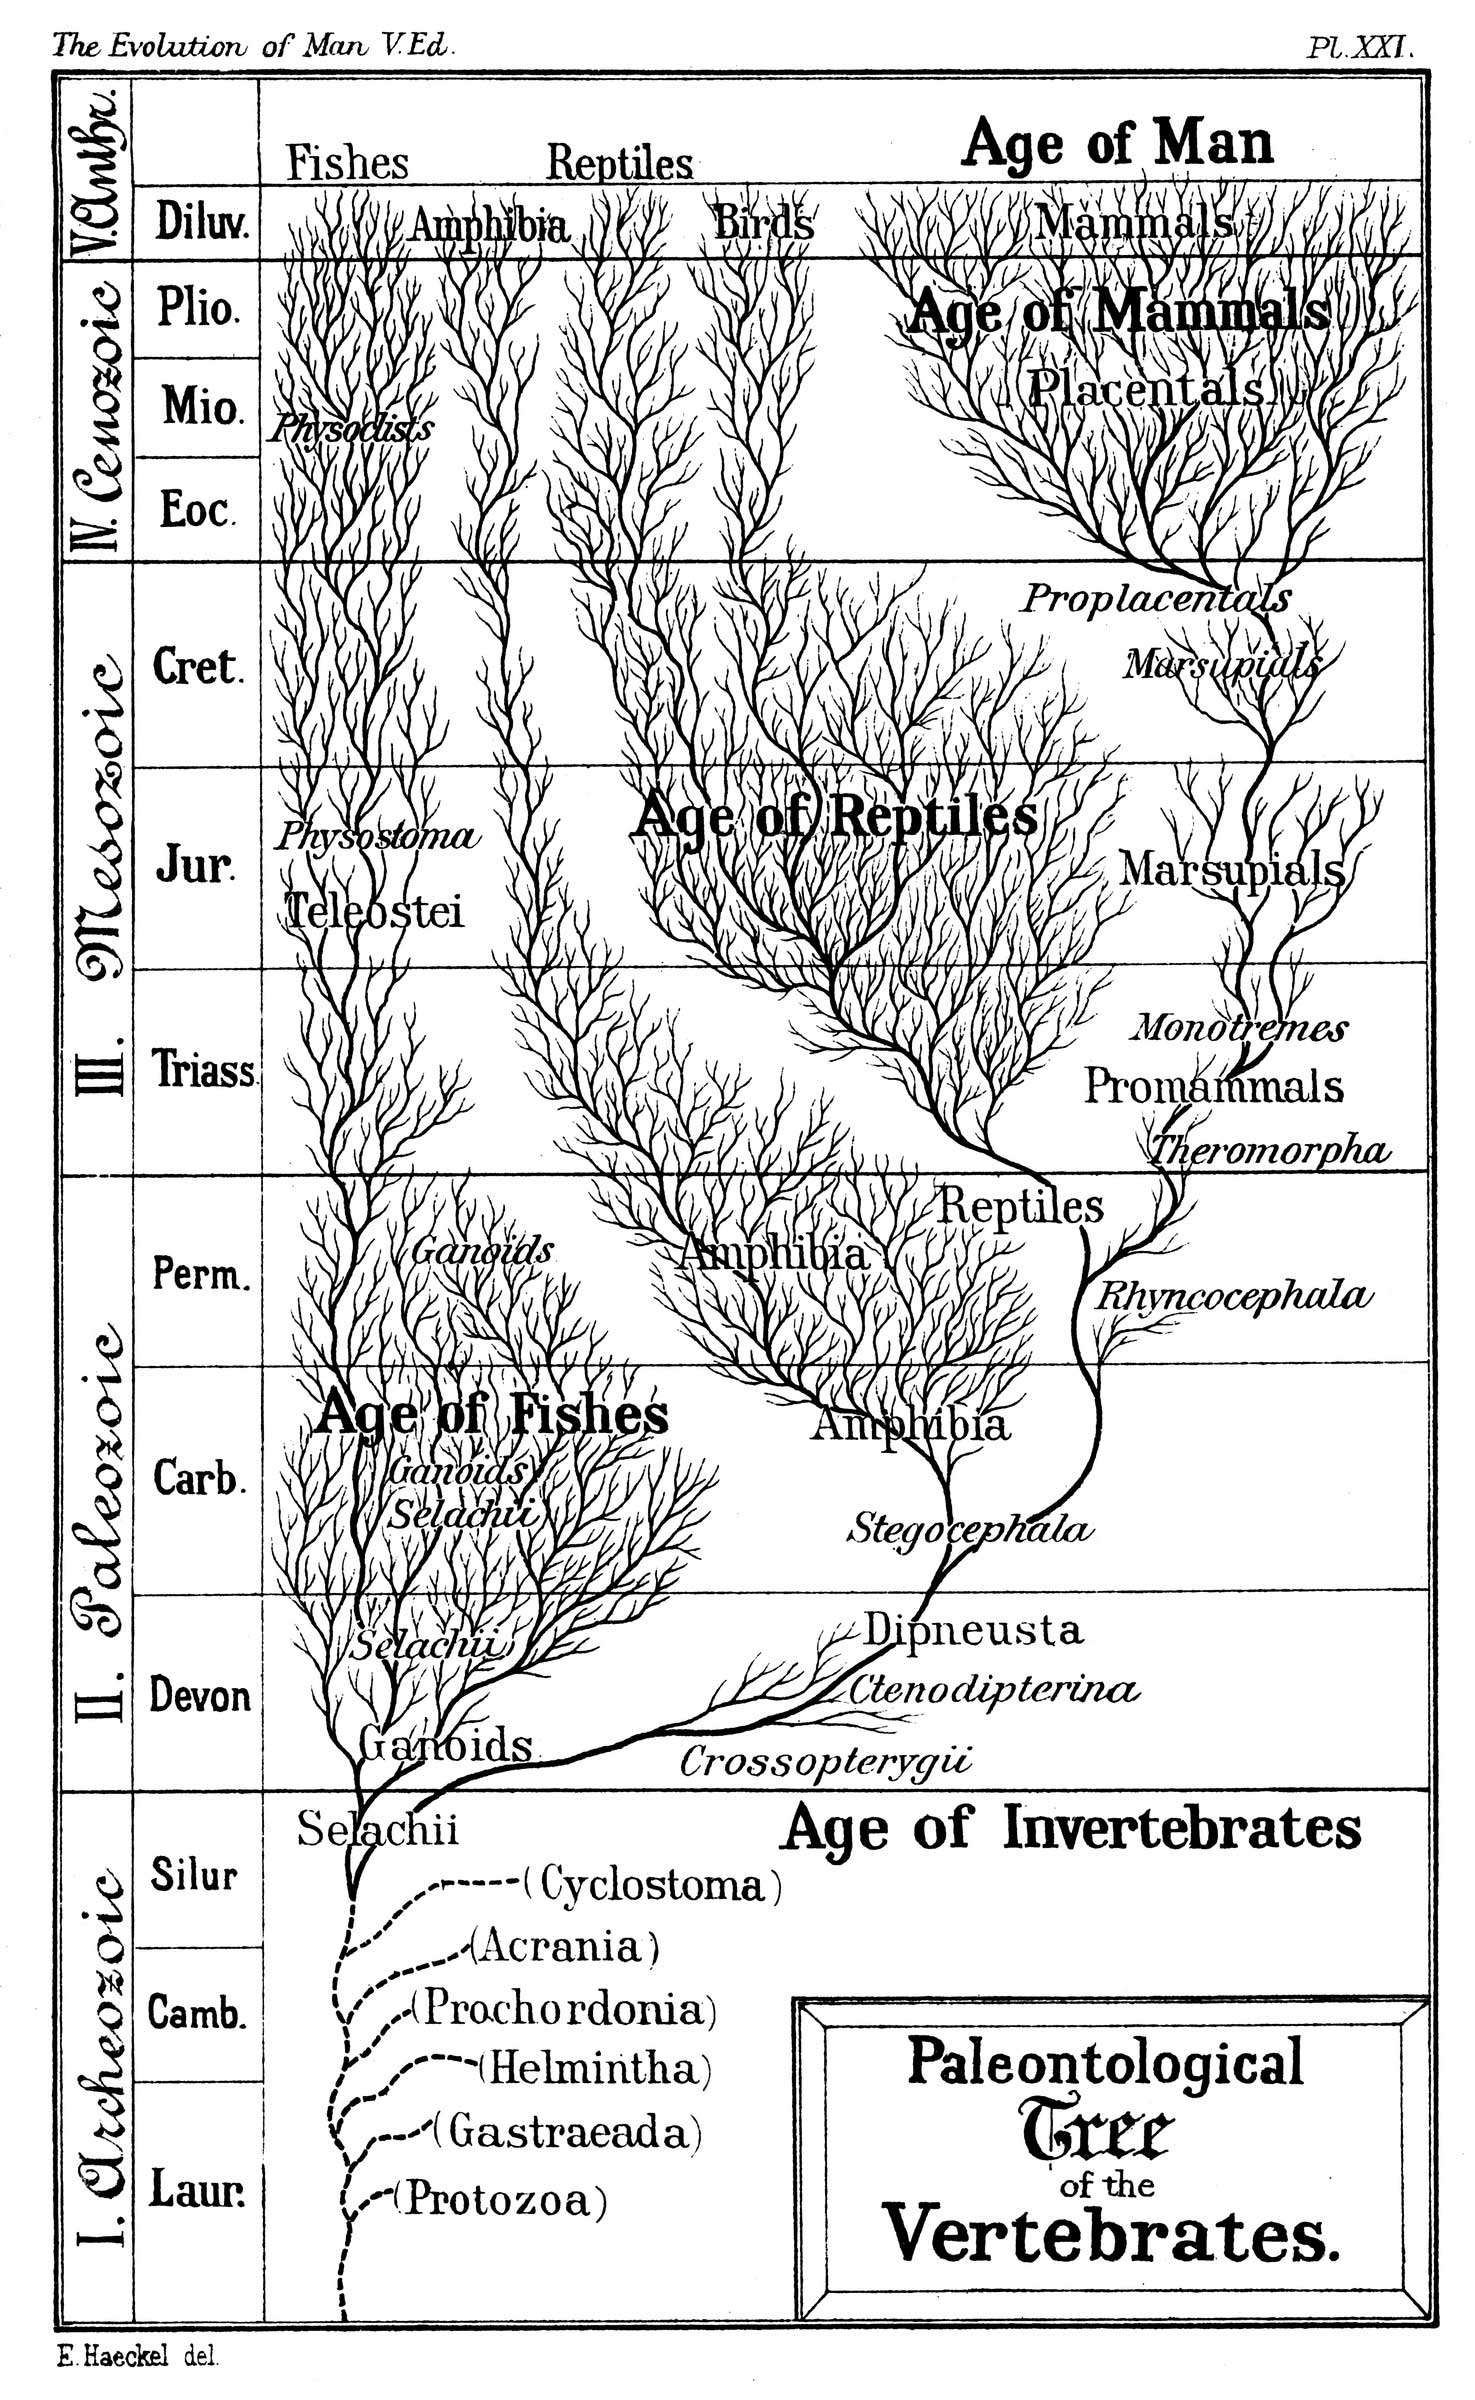 Haeckel's Paleontological Tree